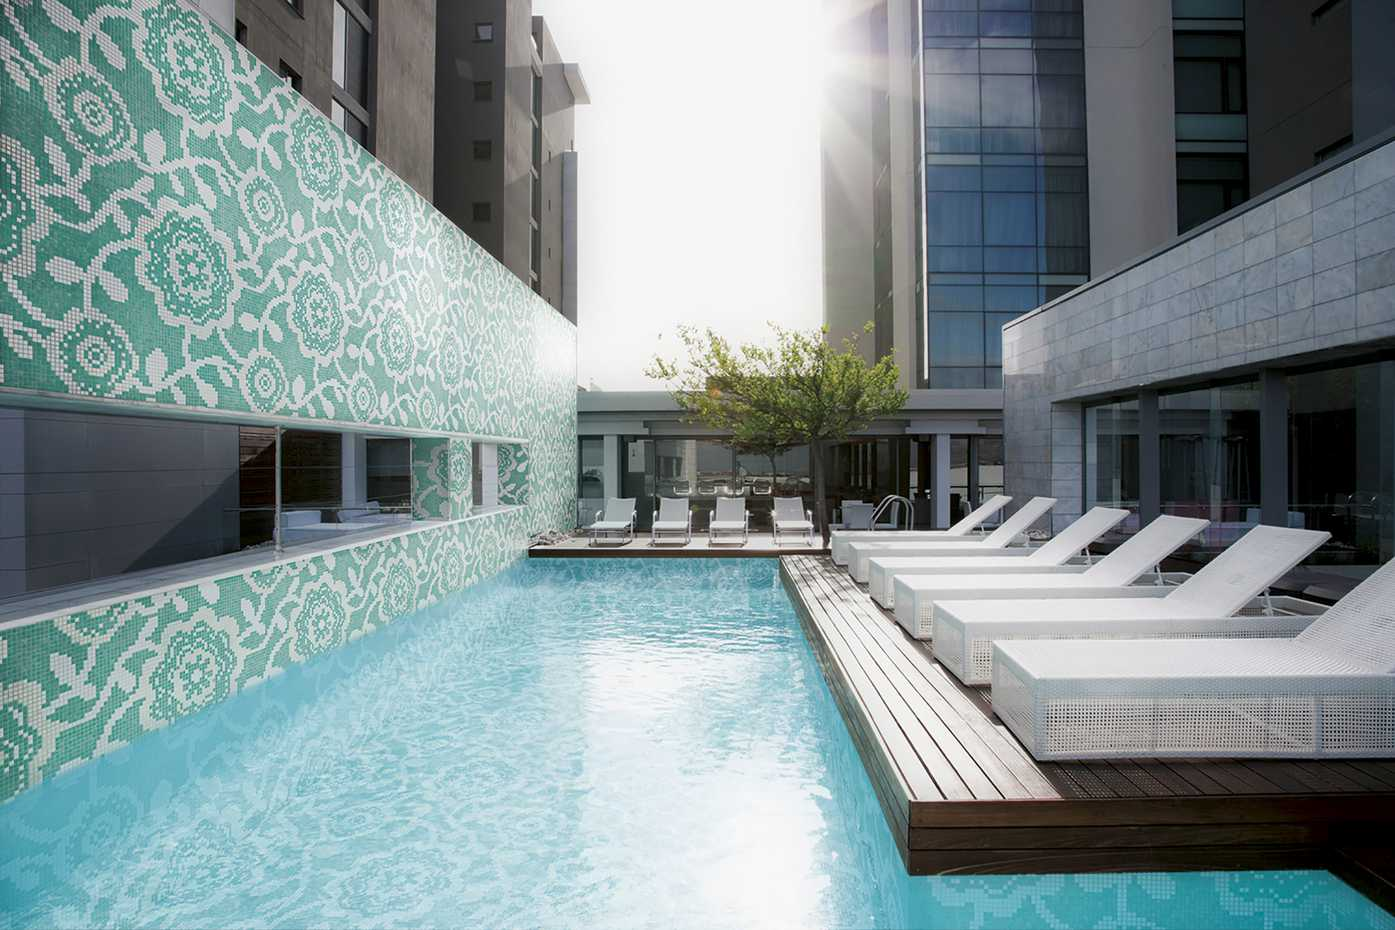 Outdoor Tiles for pools